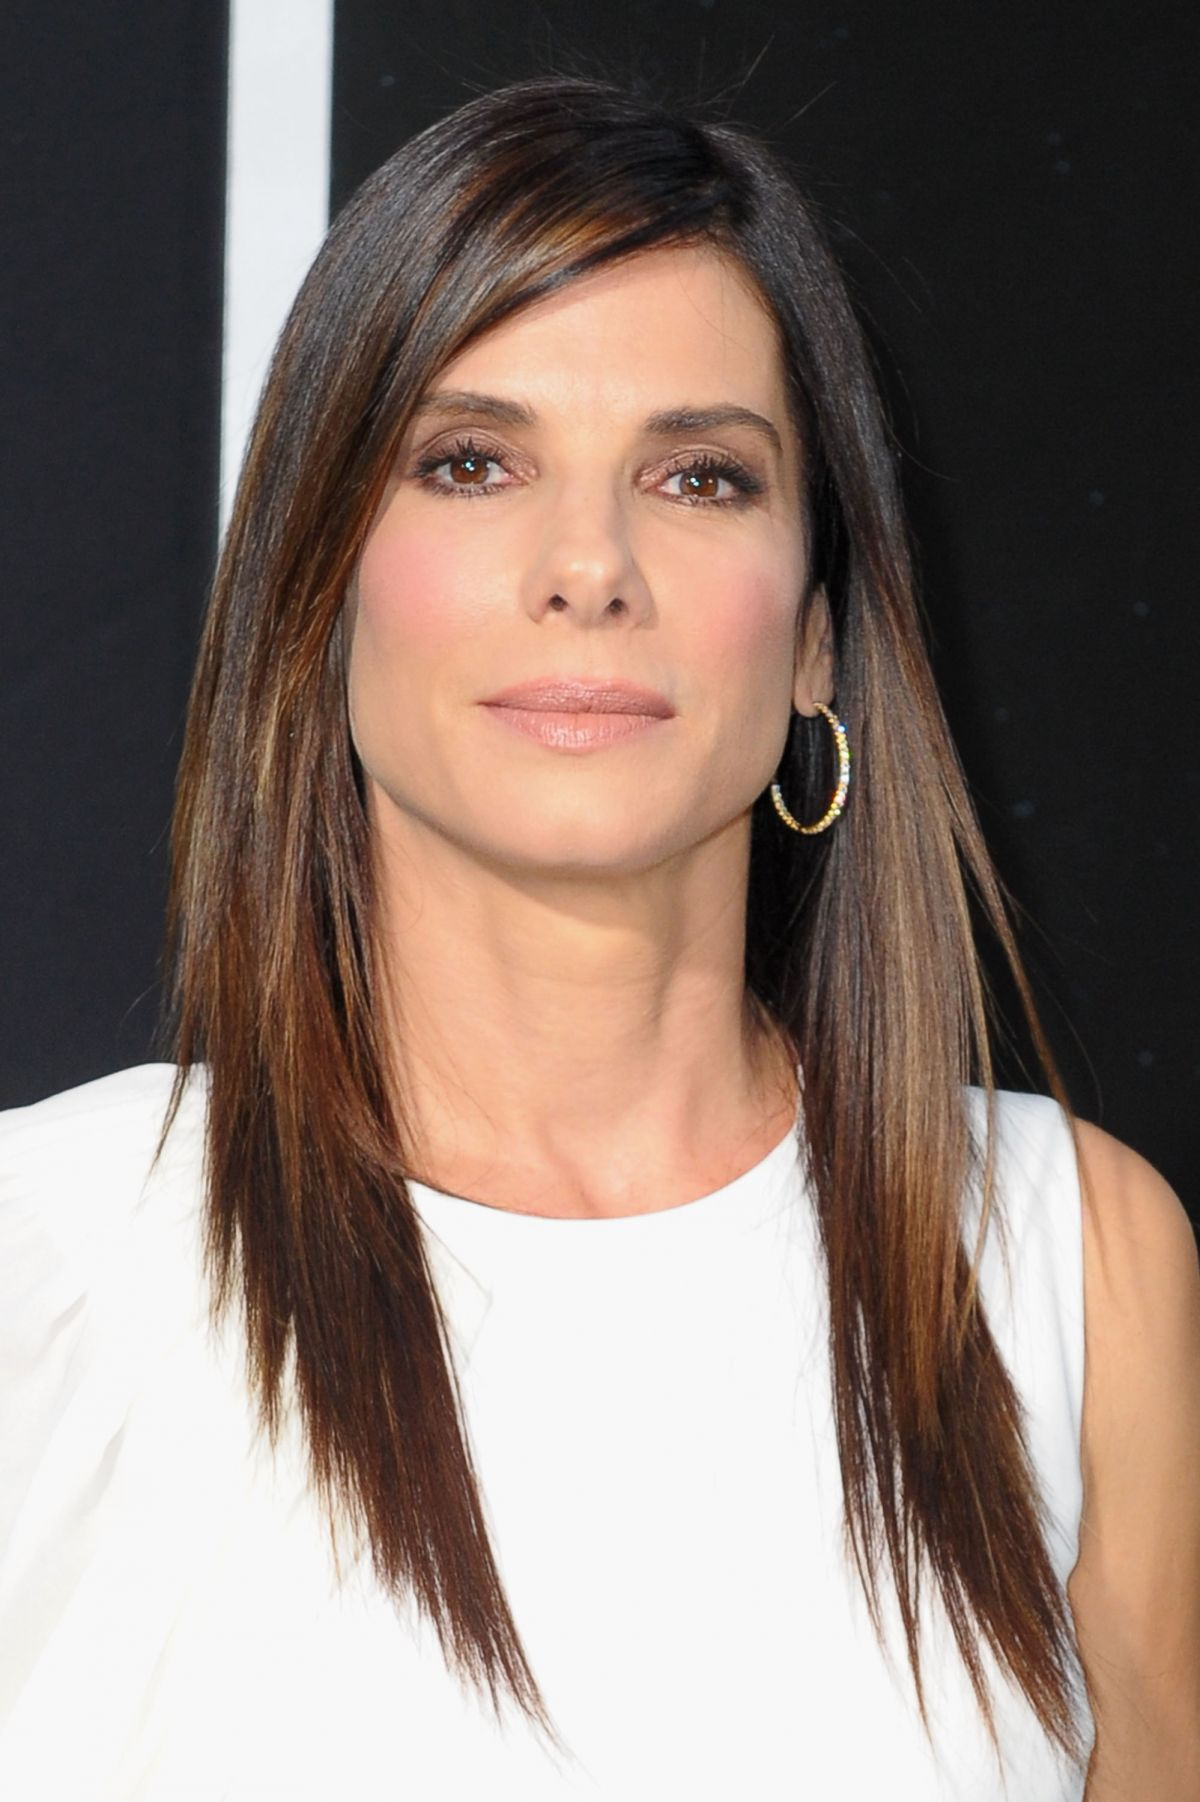 Sandra Bullock At Gravity Premiere In New York City